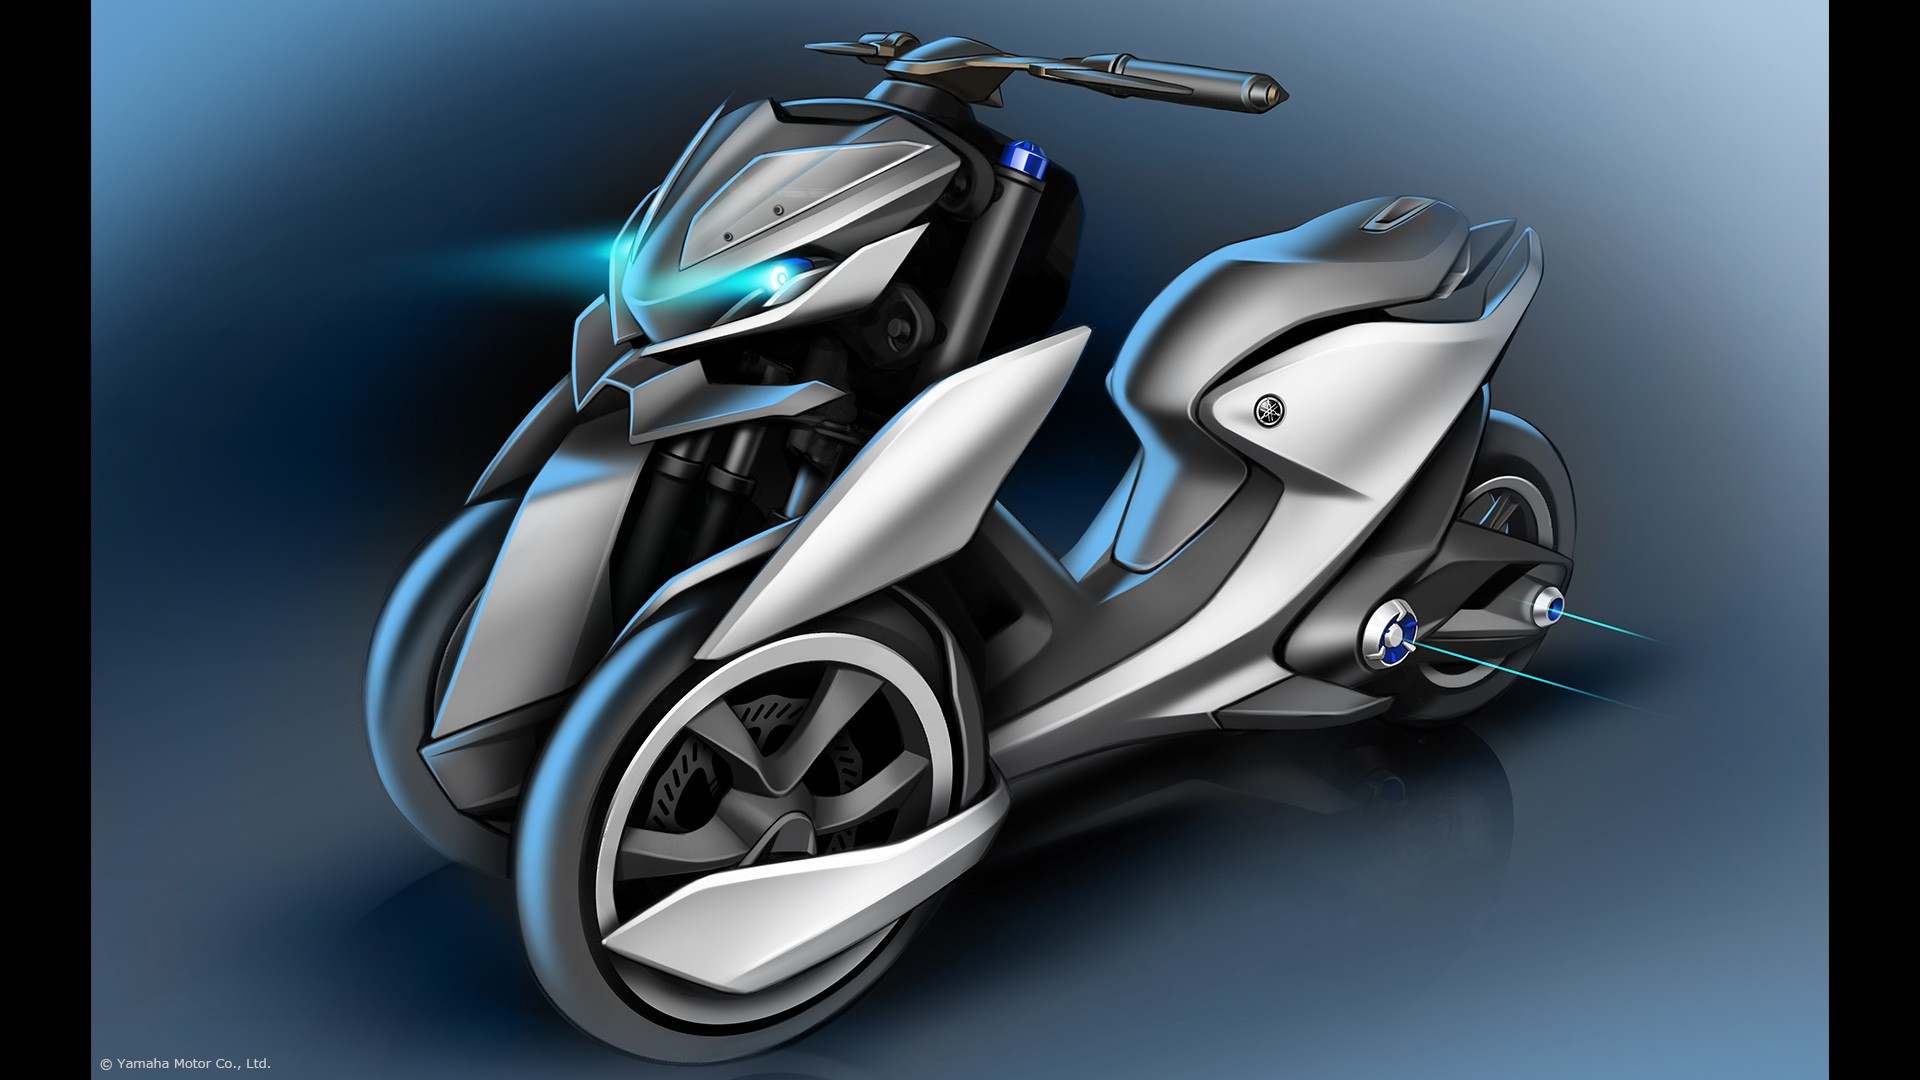 http://s1.cdn.autoevolution.com/images/news/gallery/yamaha-shows-03gen-three-wheeled-scooter-concepts-video-photo-gallery_8.jpg